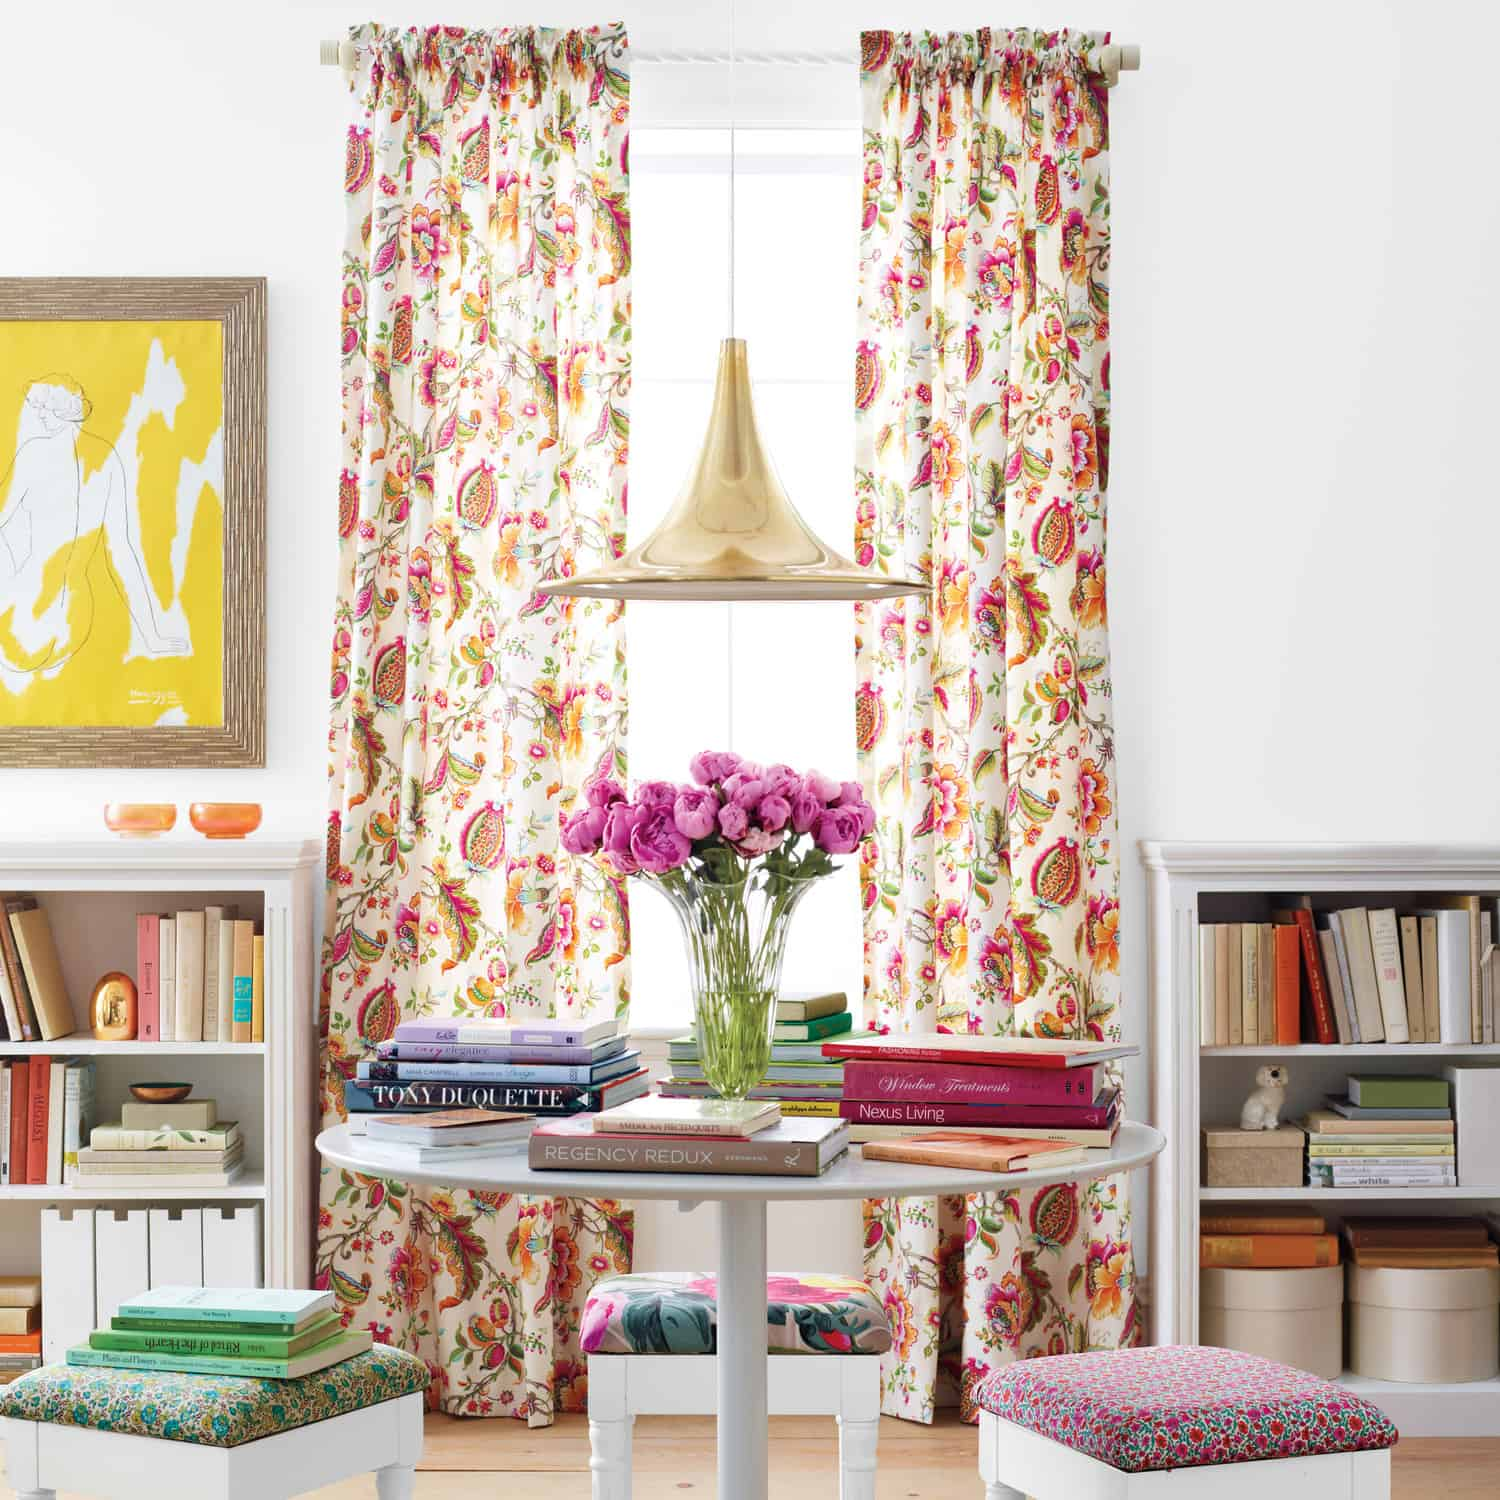 floral print decor  10 Summer Trends To Bring The Sun In